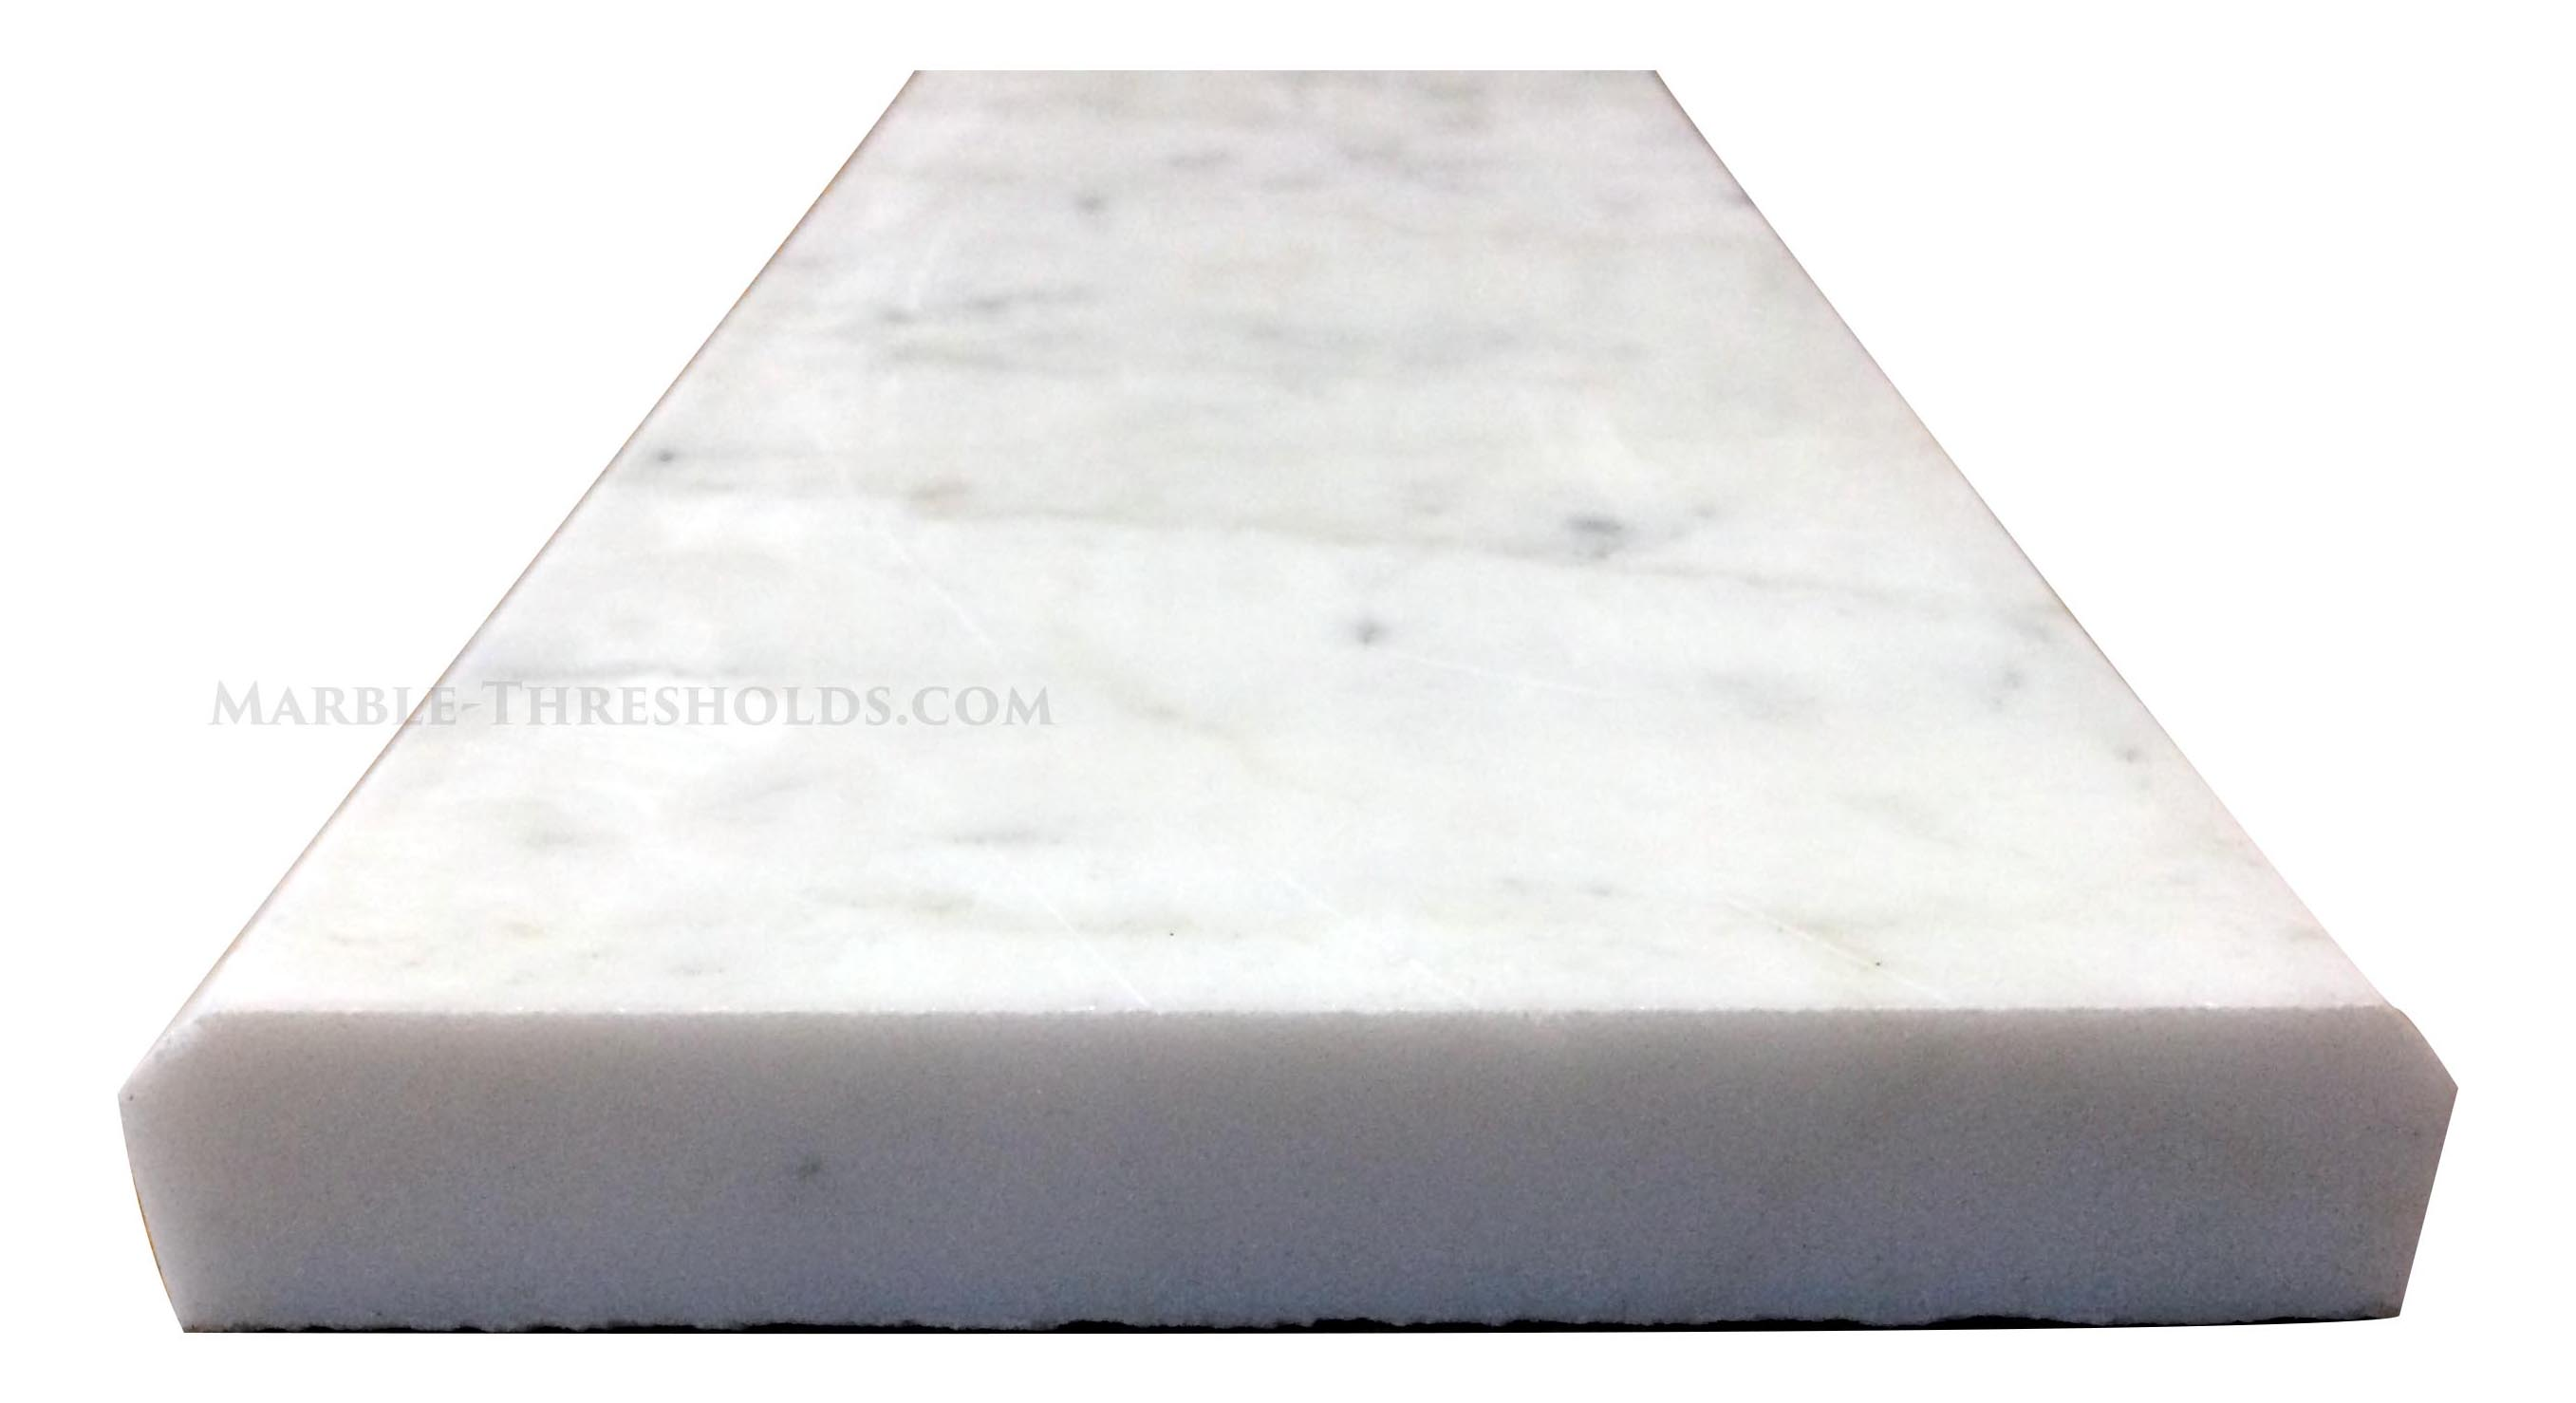 White Carrara Marble Saddles And Door Thresholds Size 36 X 6 X 3 4